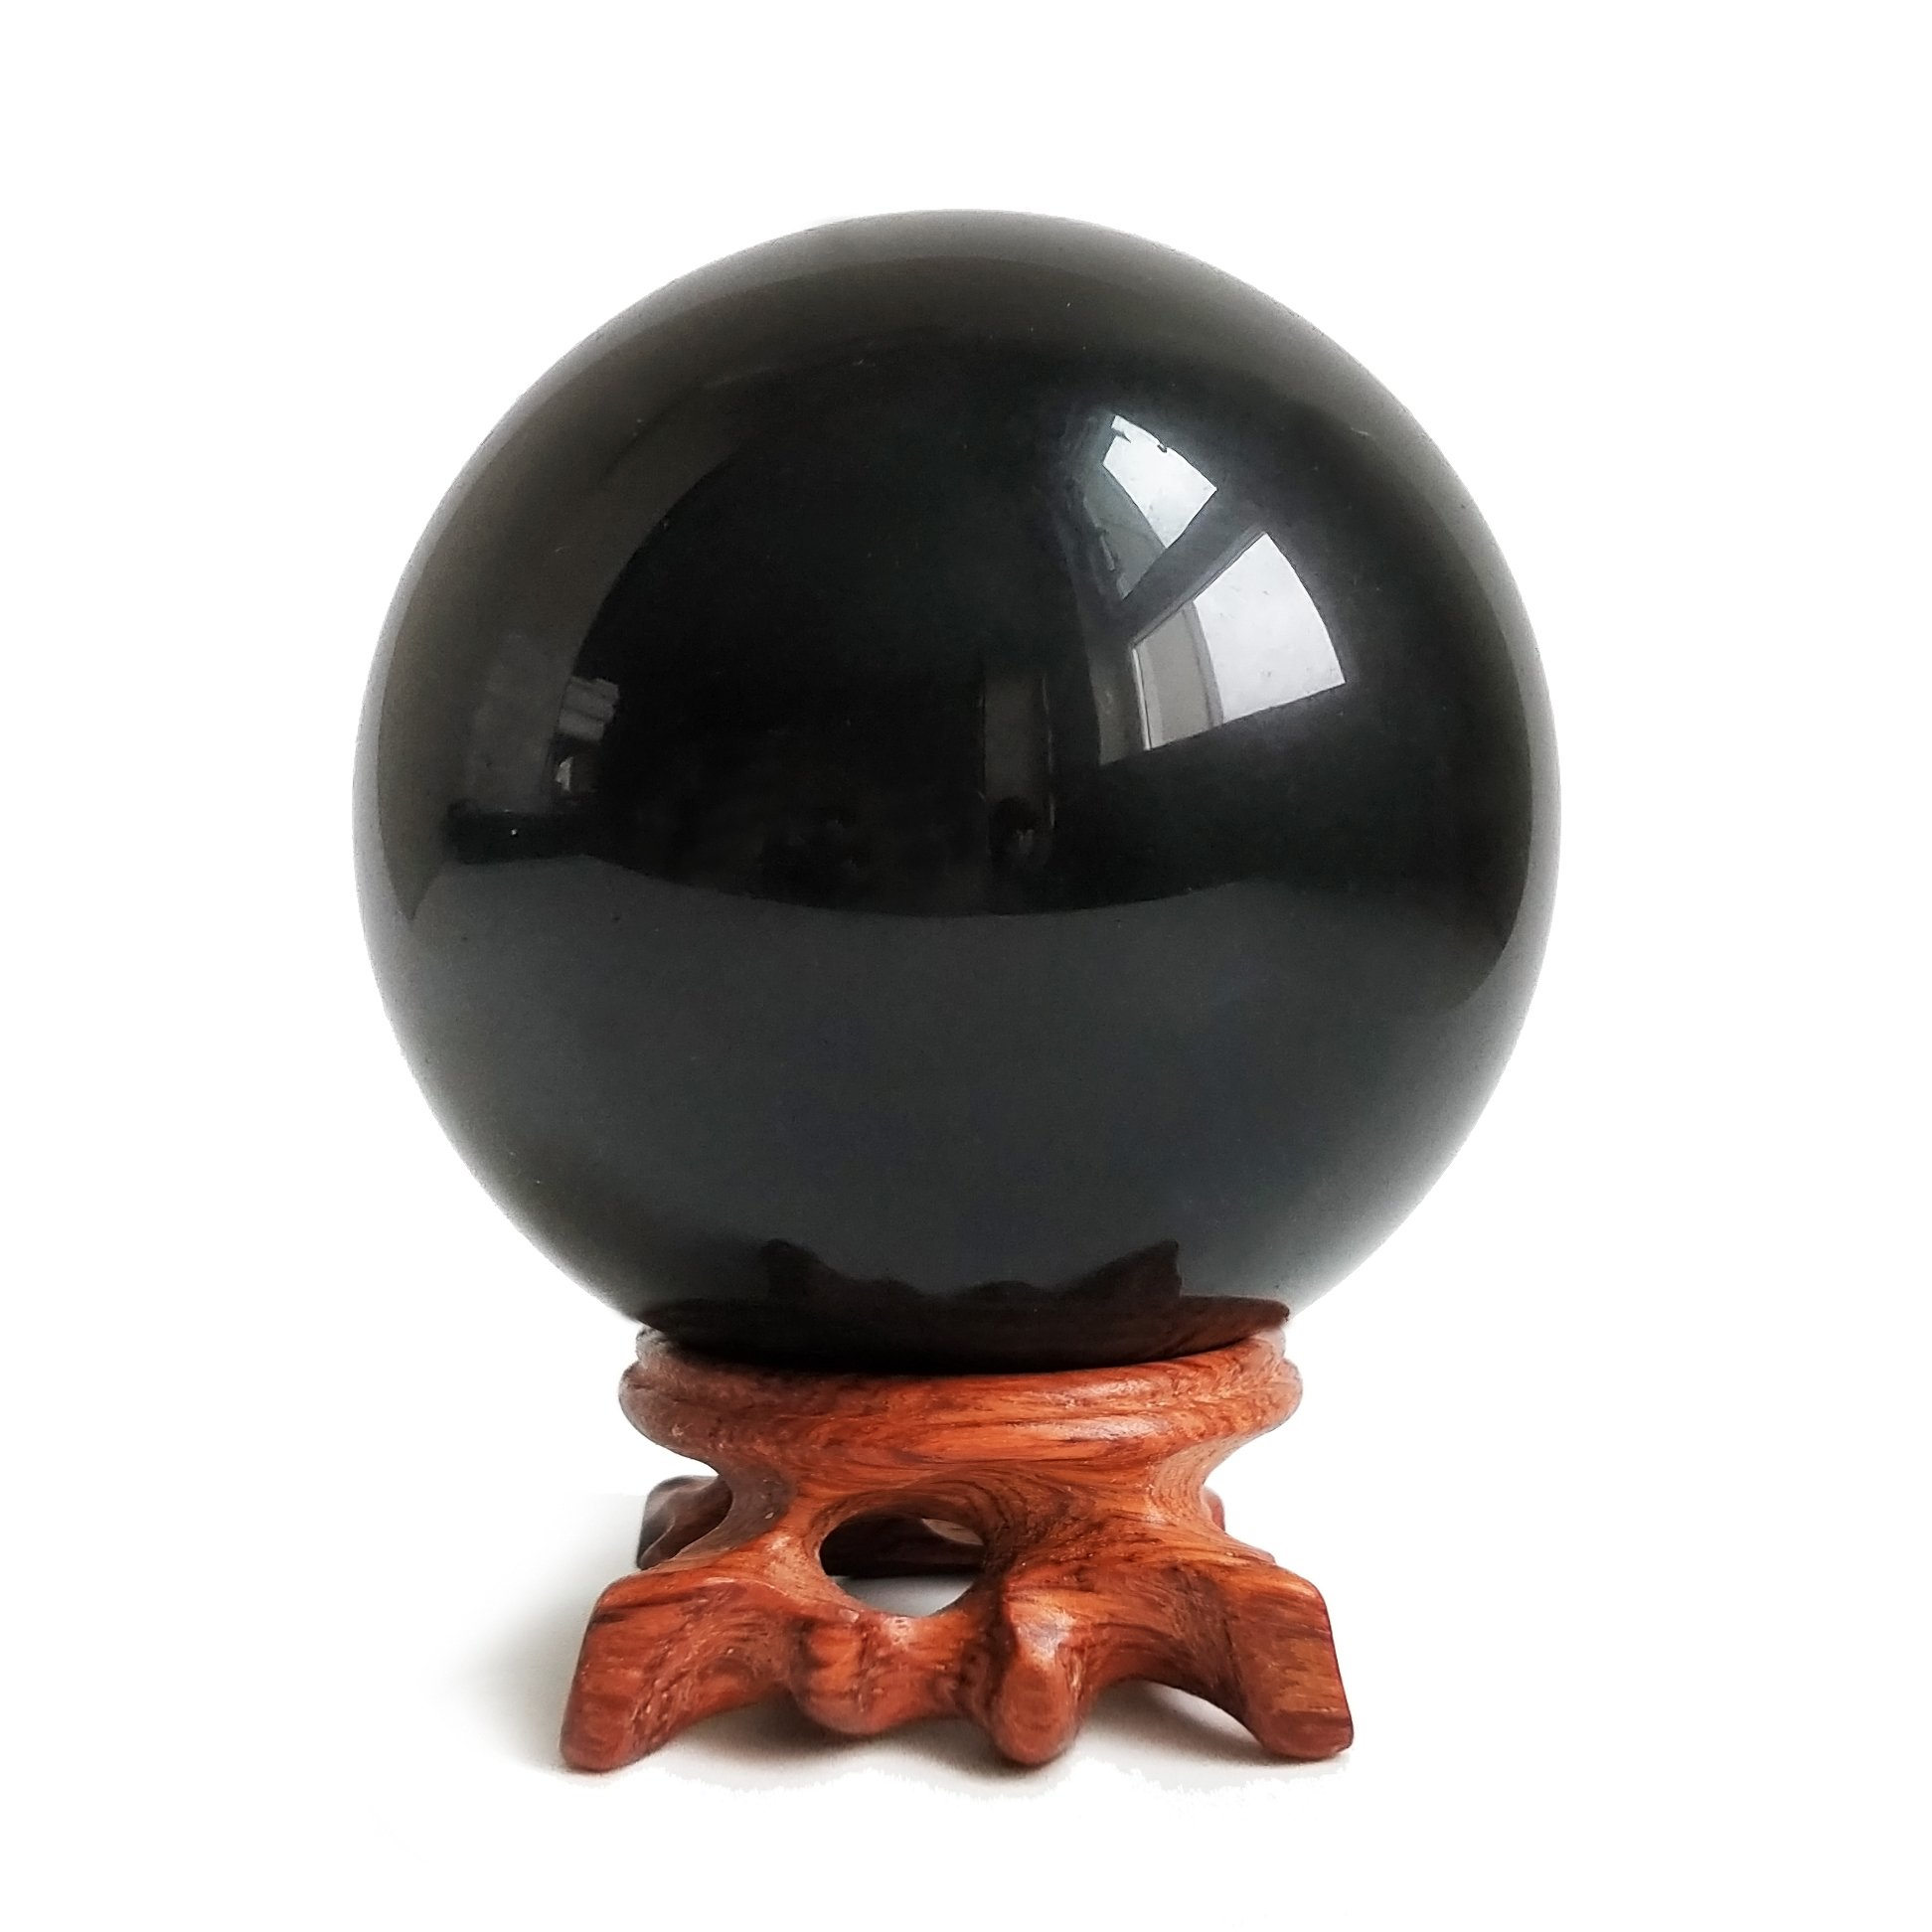 Mina Heal Obsidian Crystal Ball for Fengshui Ball, Meditation, Crystal Healing, Divination Sphere, Home Decoration, 100% Natural and Genuine (100 mm)